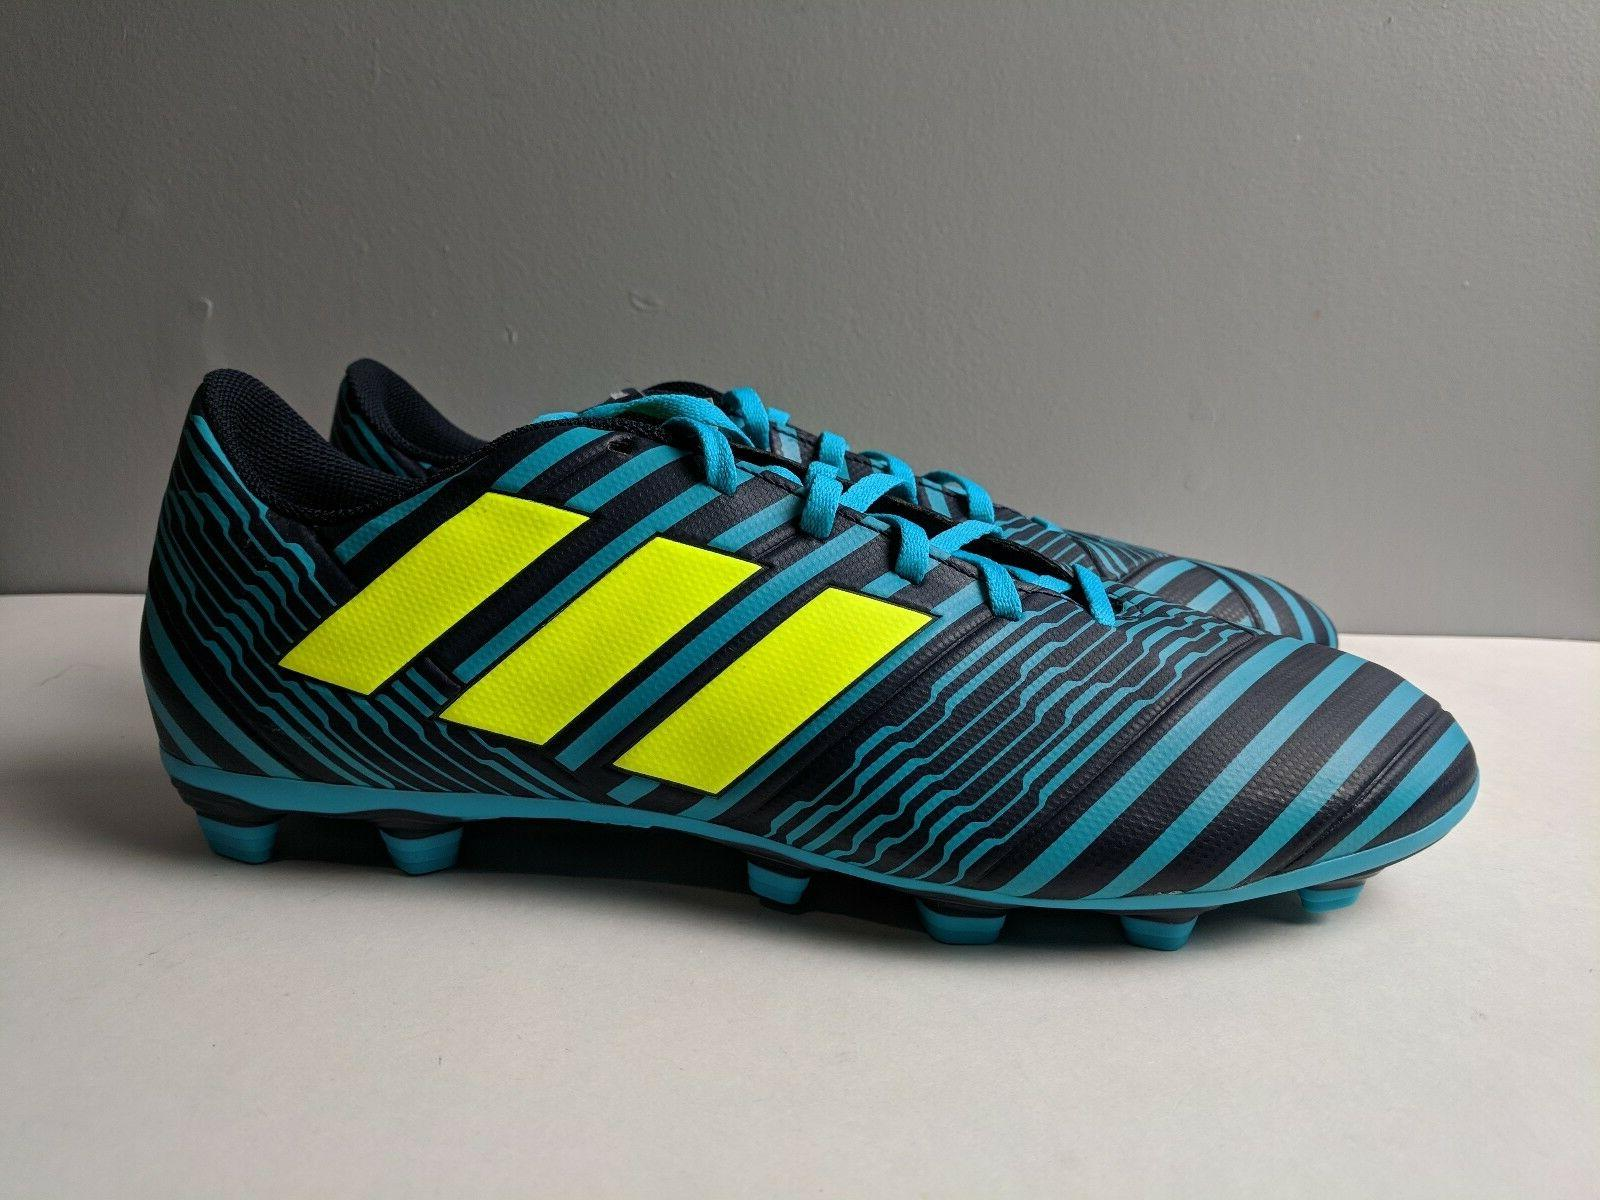 messi cleats 2017 cheap online